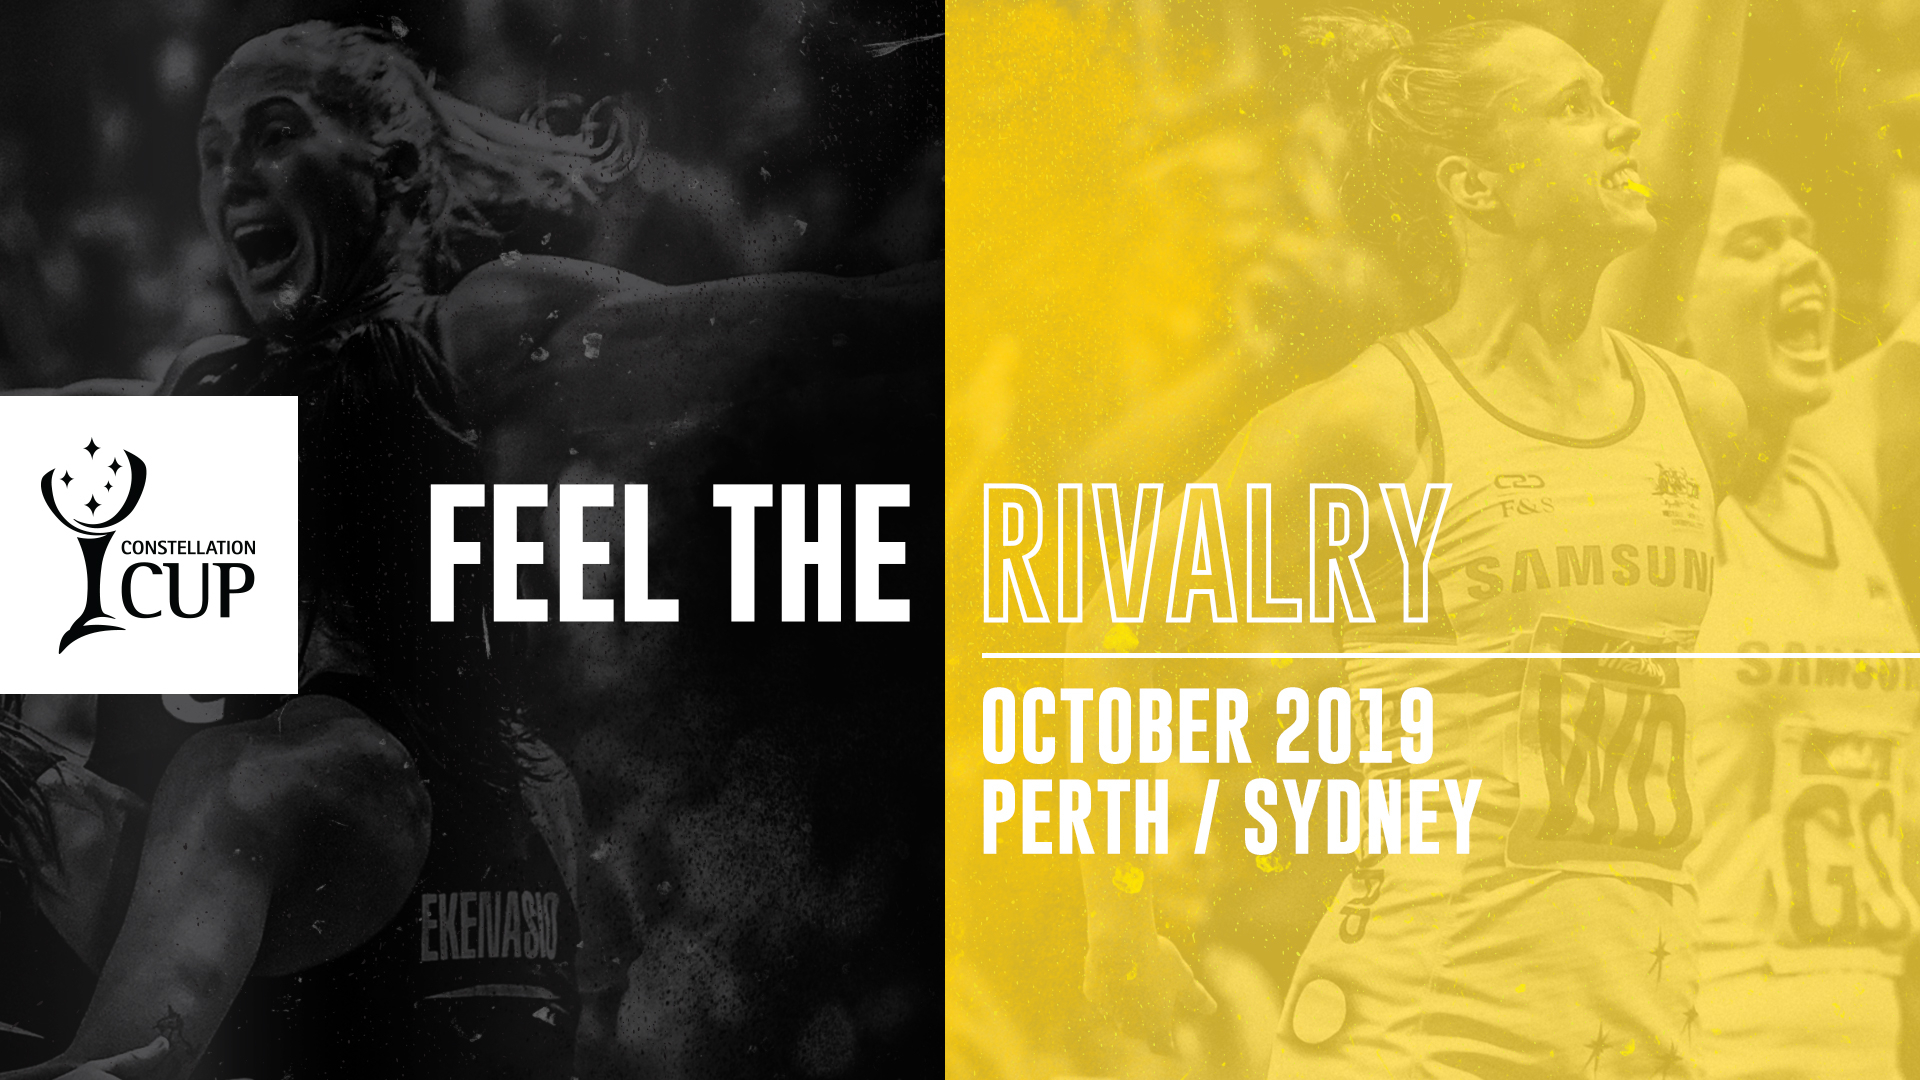 Netball Constellation Cup 2019 | Qudos Bank Arena throughout Community Calender Sydney October 2019